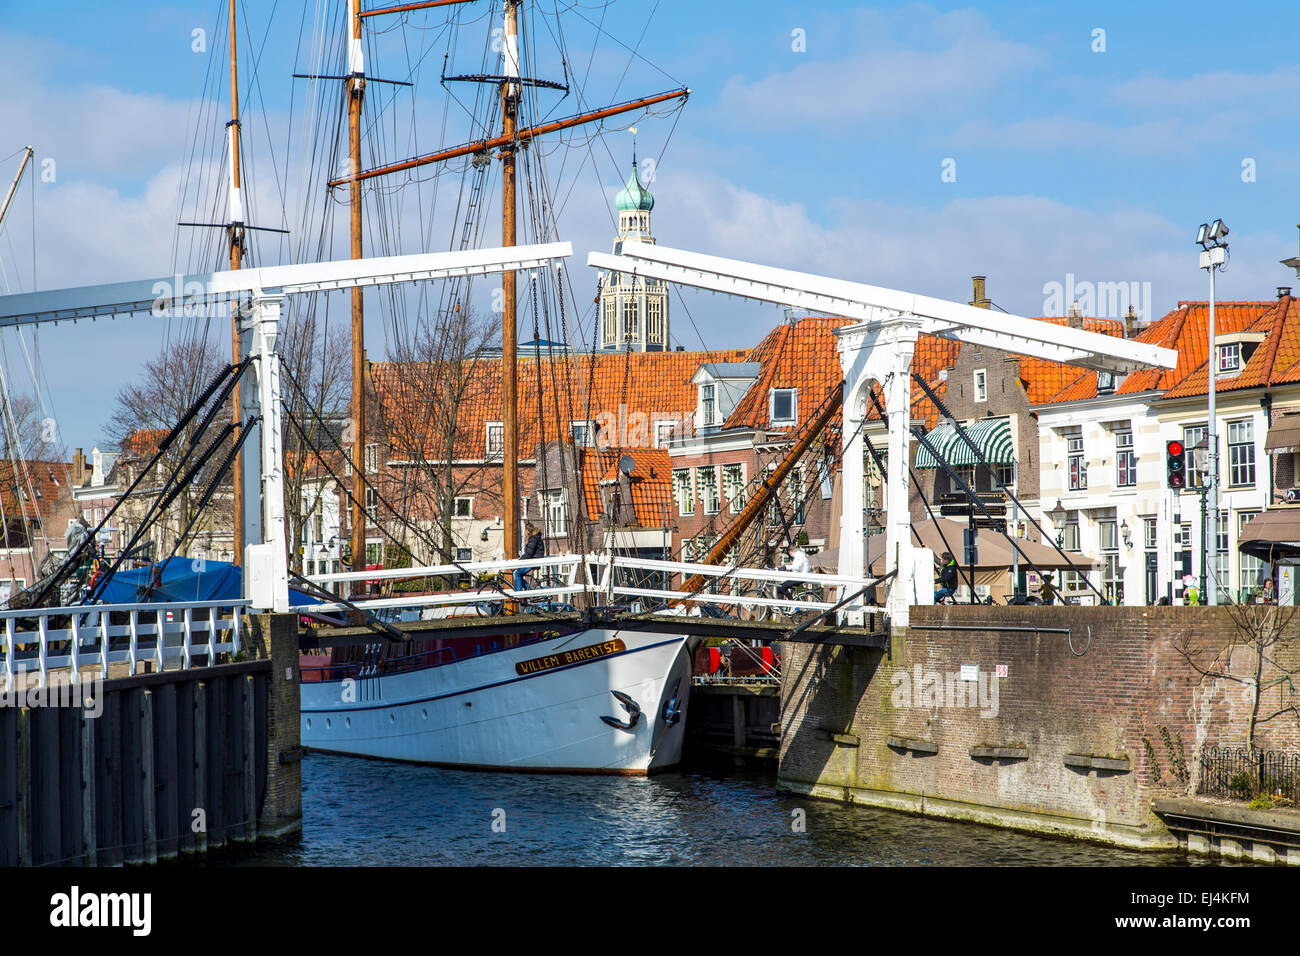 Historic town of Enkhuizen, North Holland, near the IJsselmeer, sailing ships in Oudehaven - Stock Image